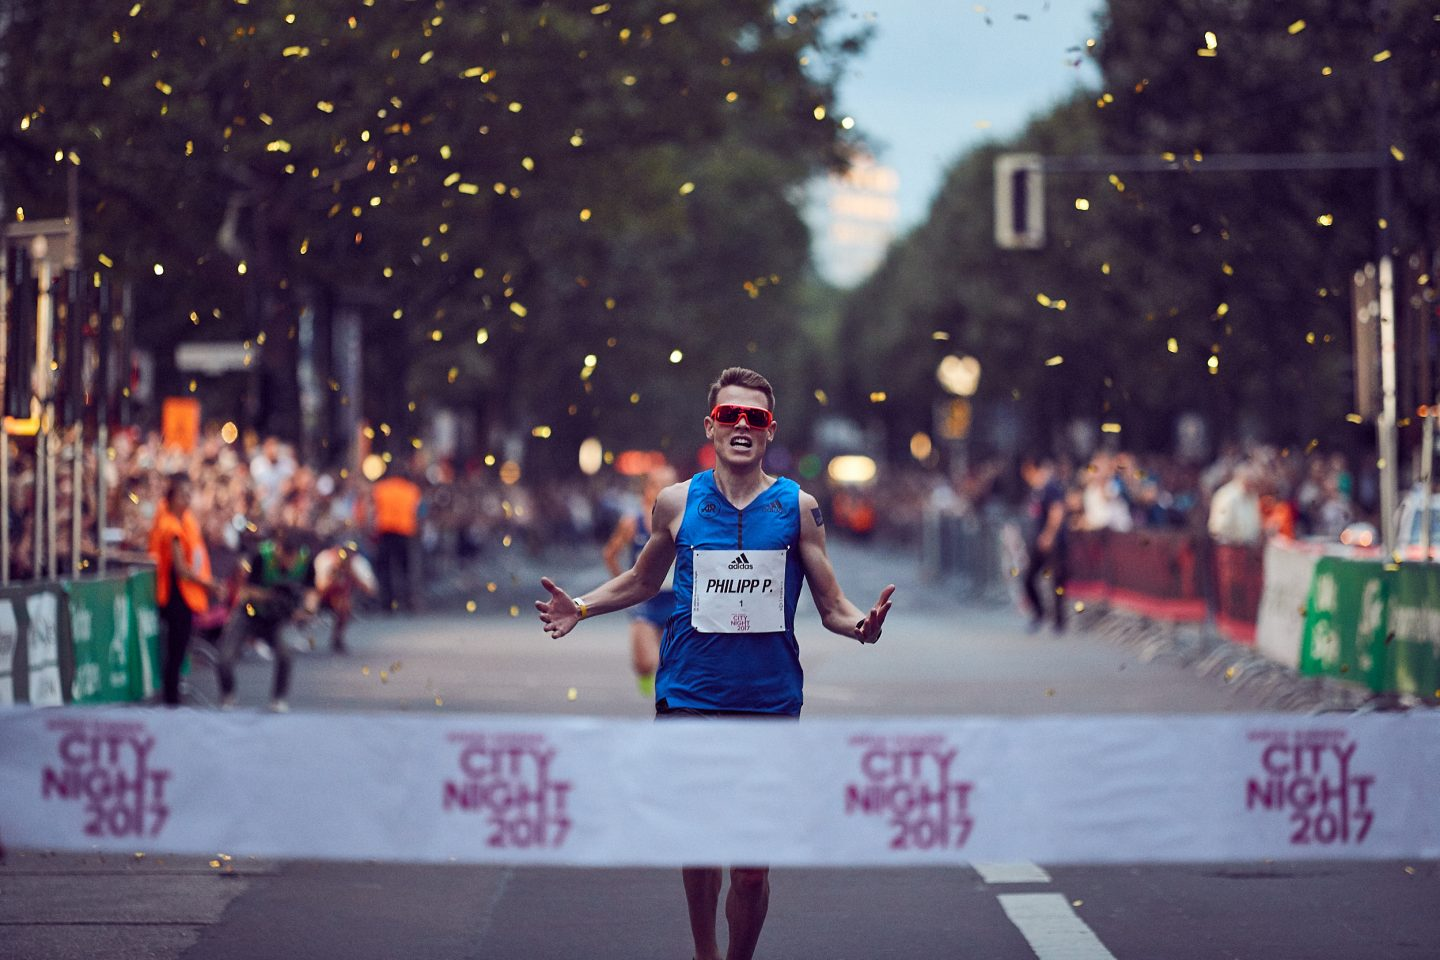 Marathon Athlete Crossing The Finish Line At Adidas Runners City Night Race In Berlin Phillipp